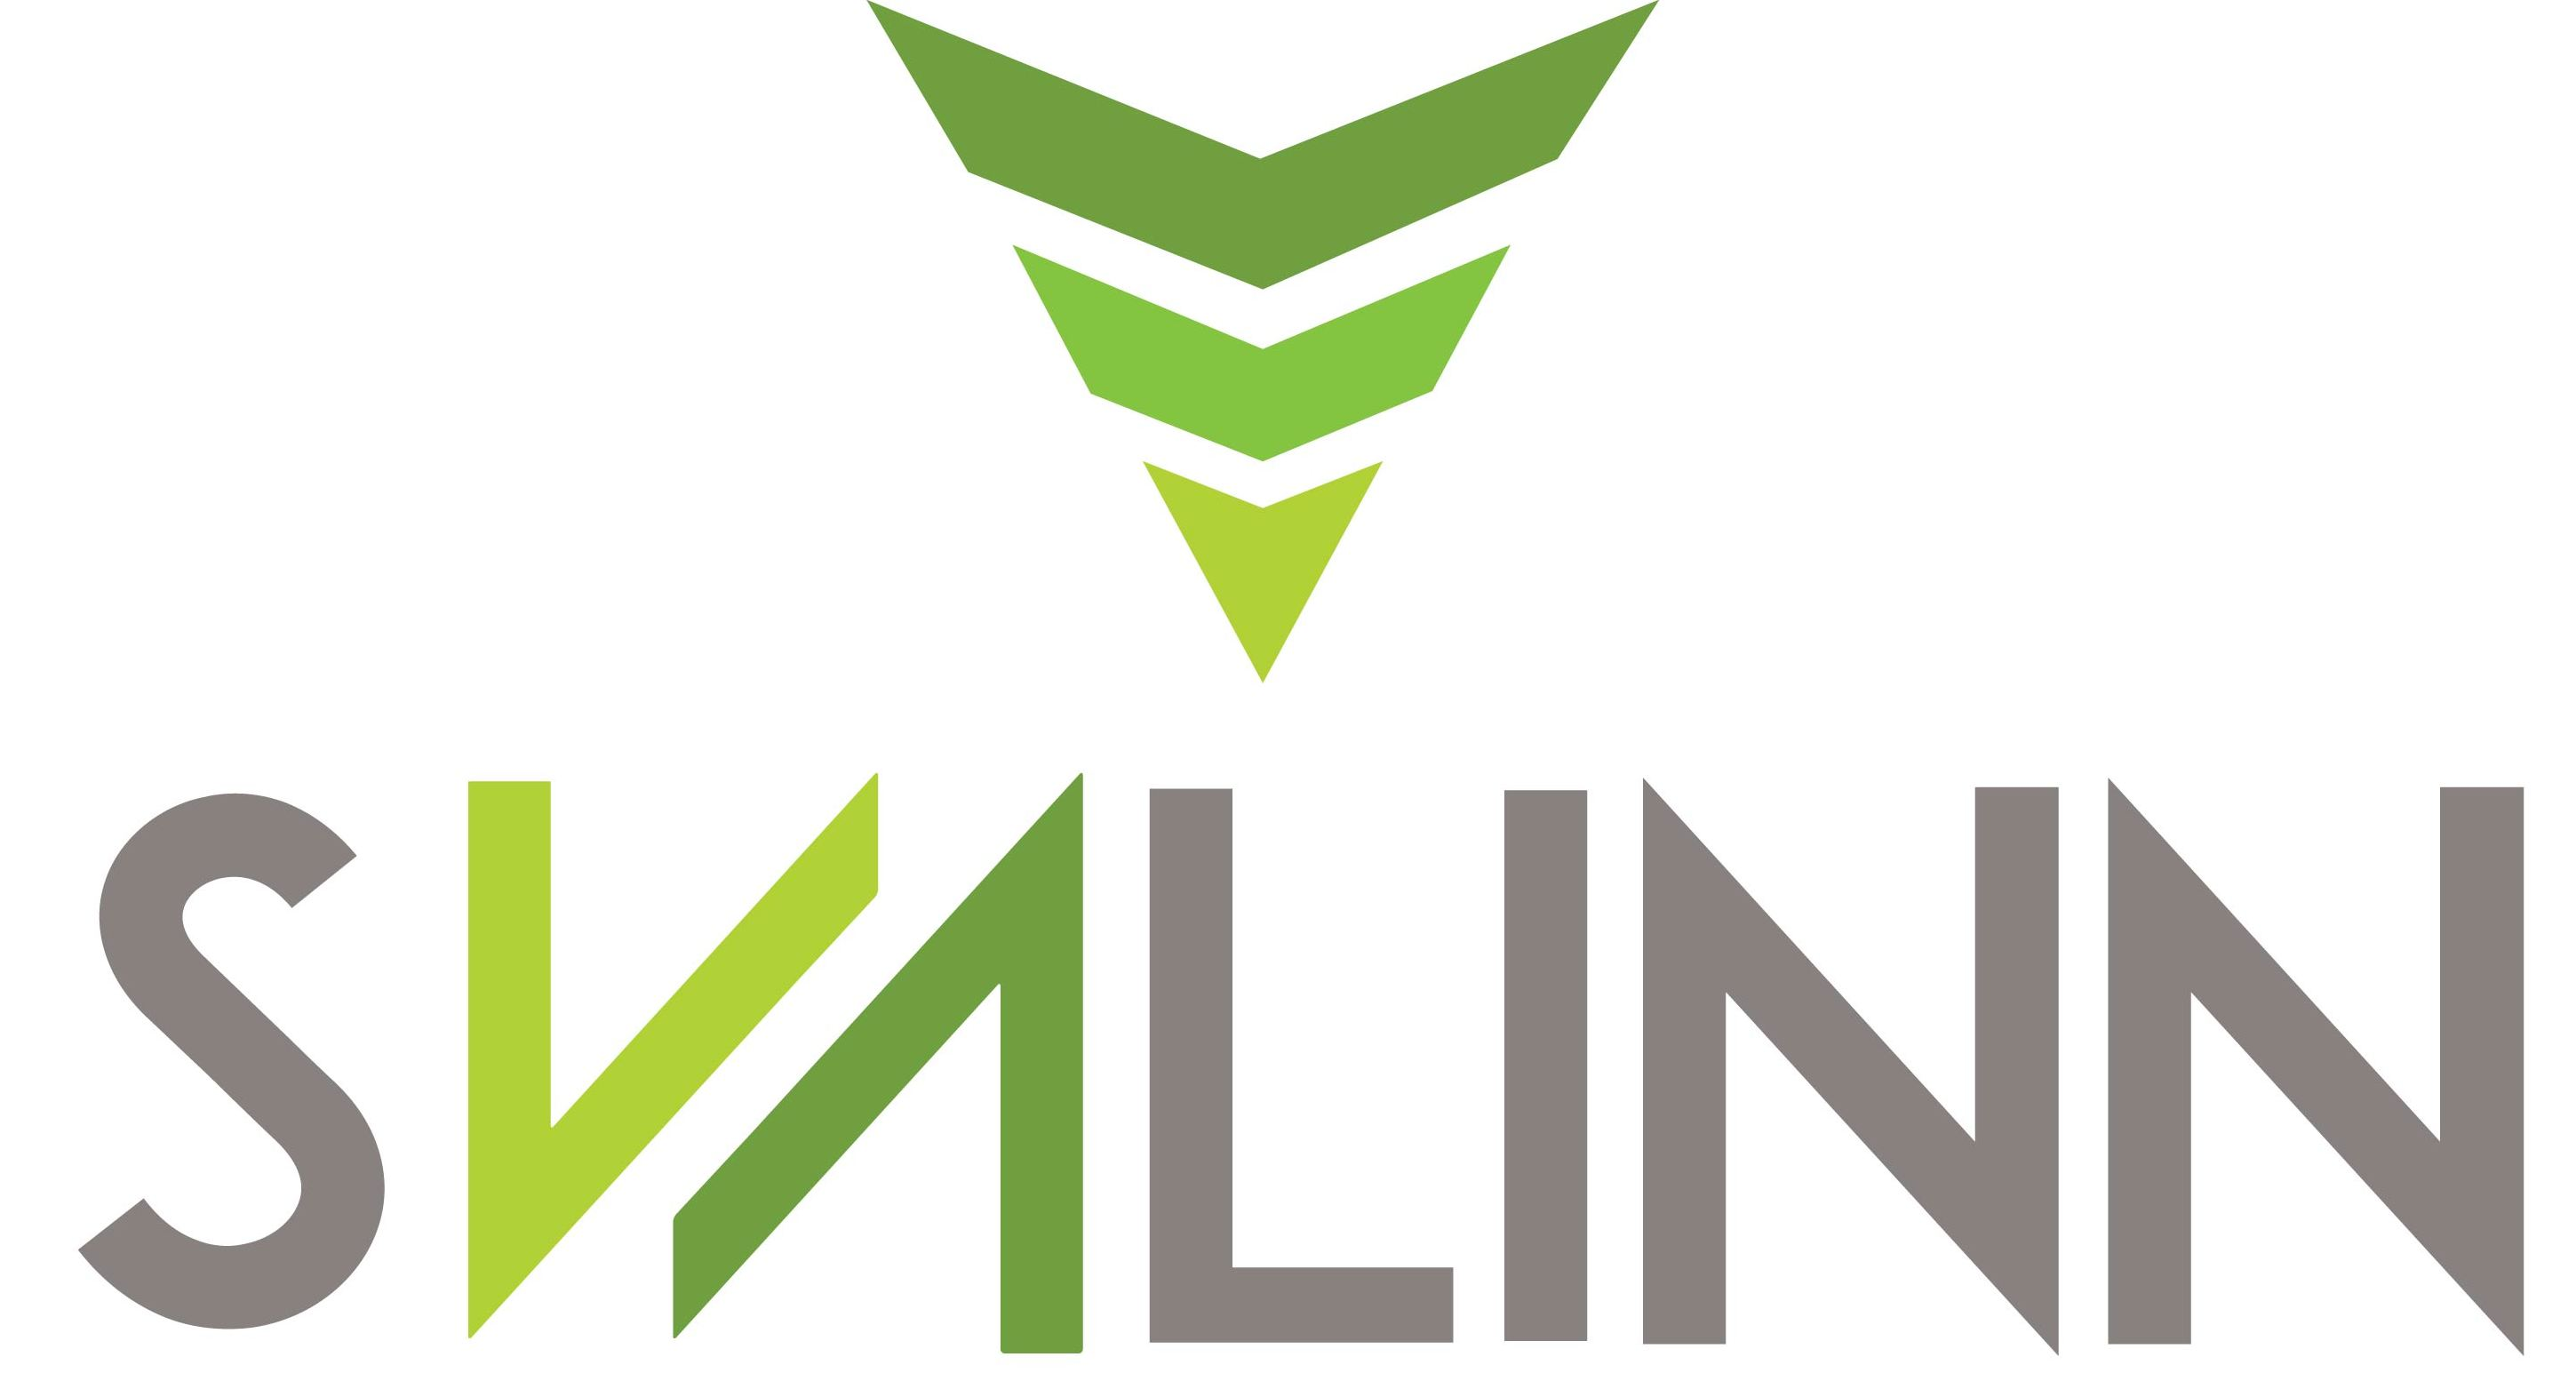 Svalinn logo - Ignite Marketing